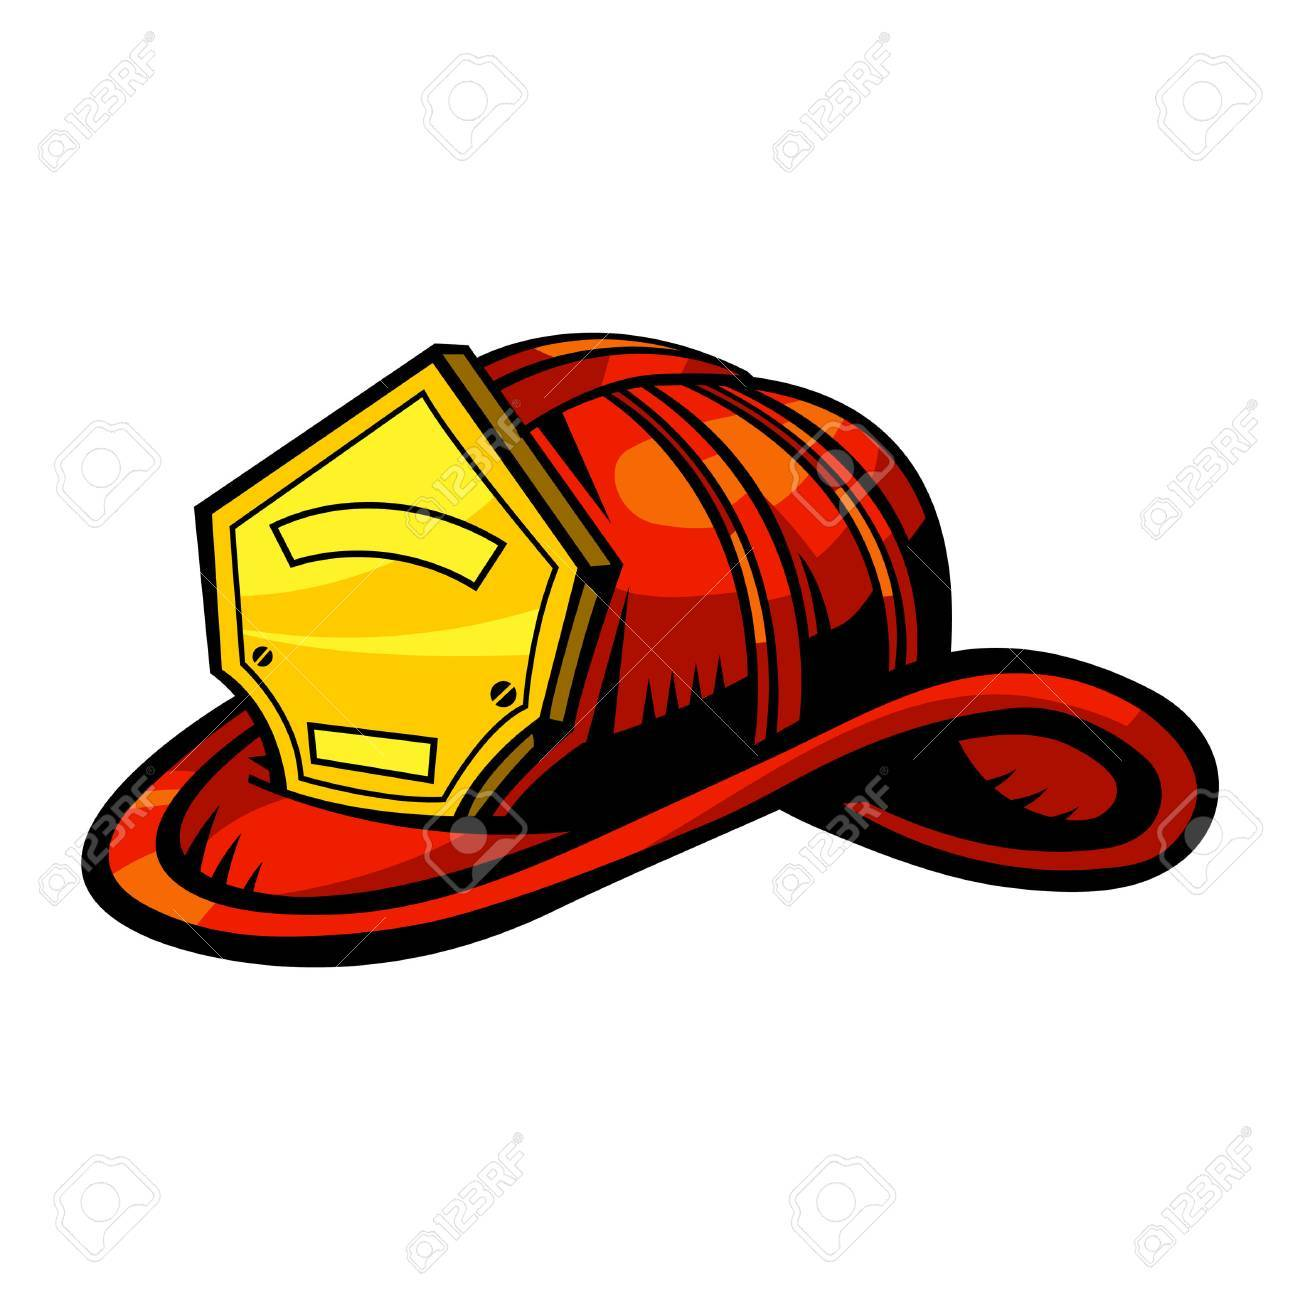 Firefighter Helmet.